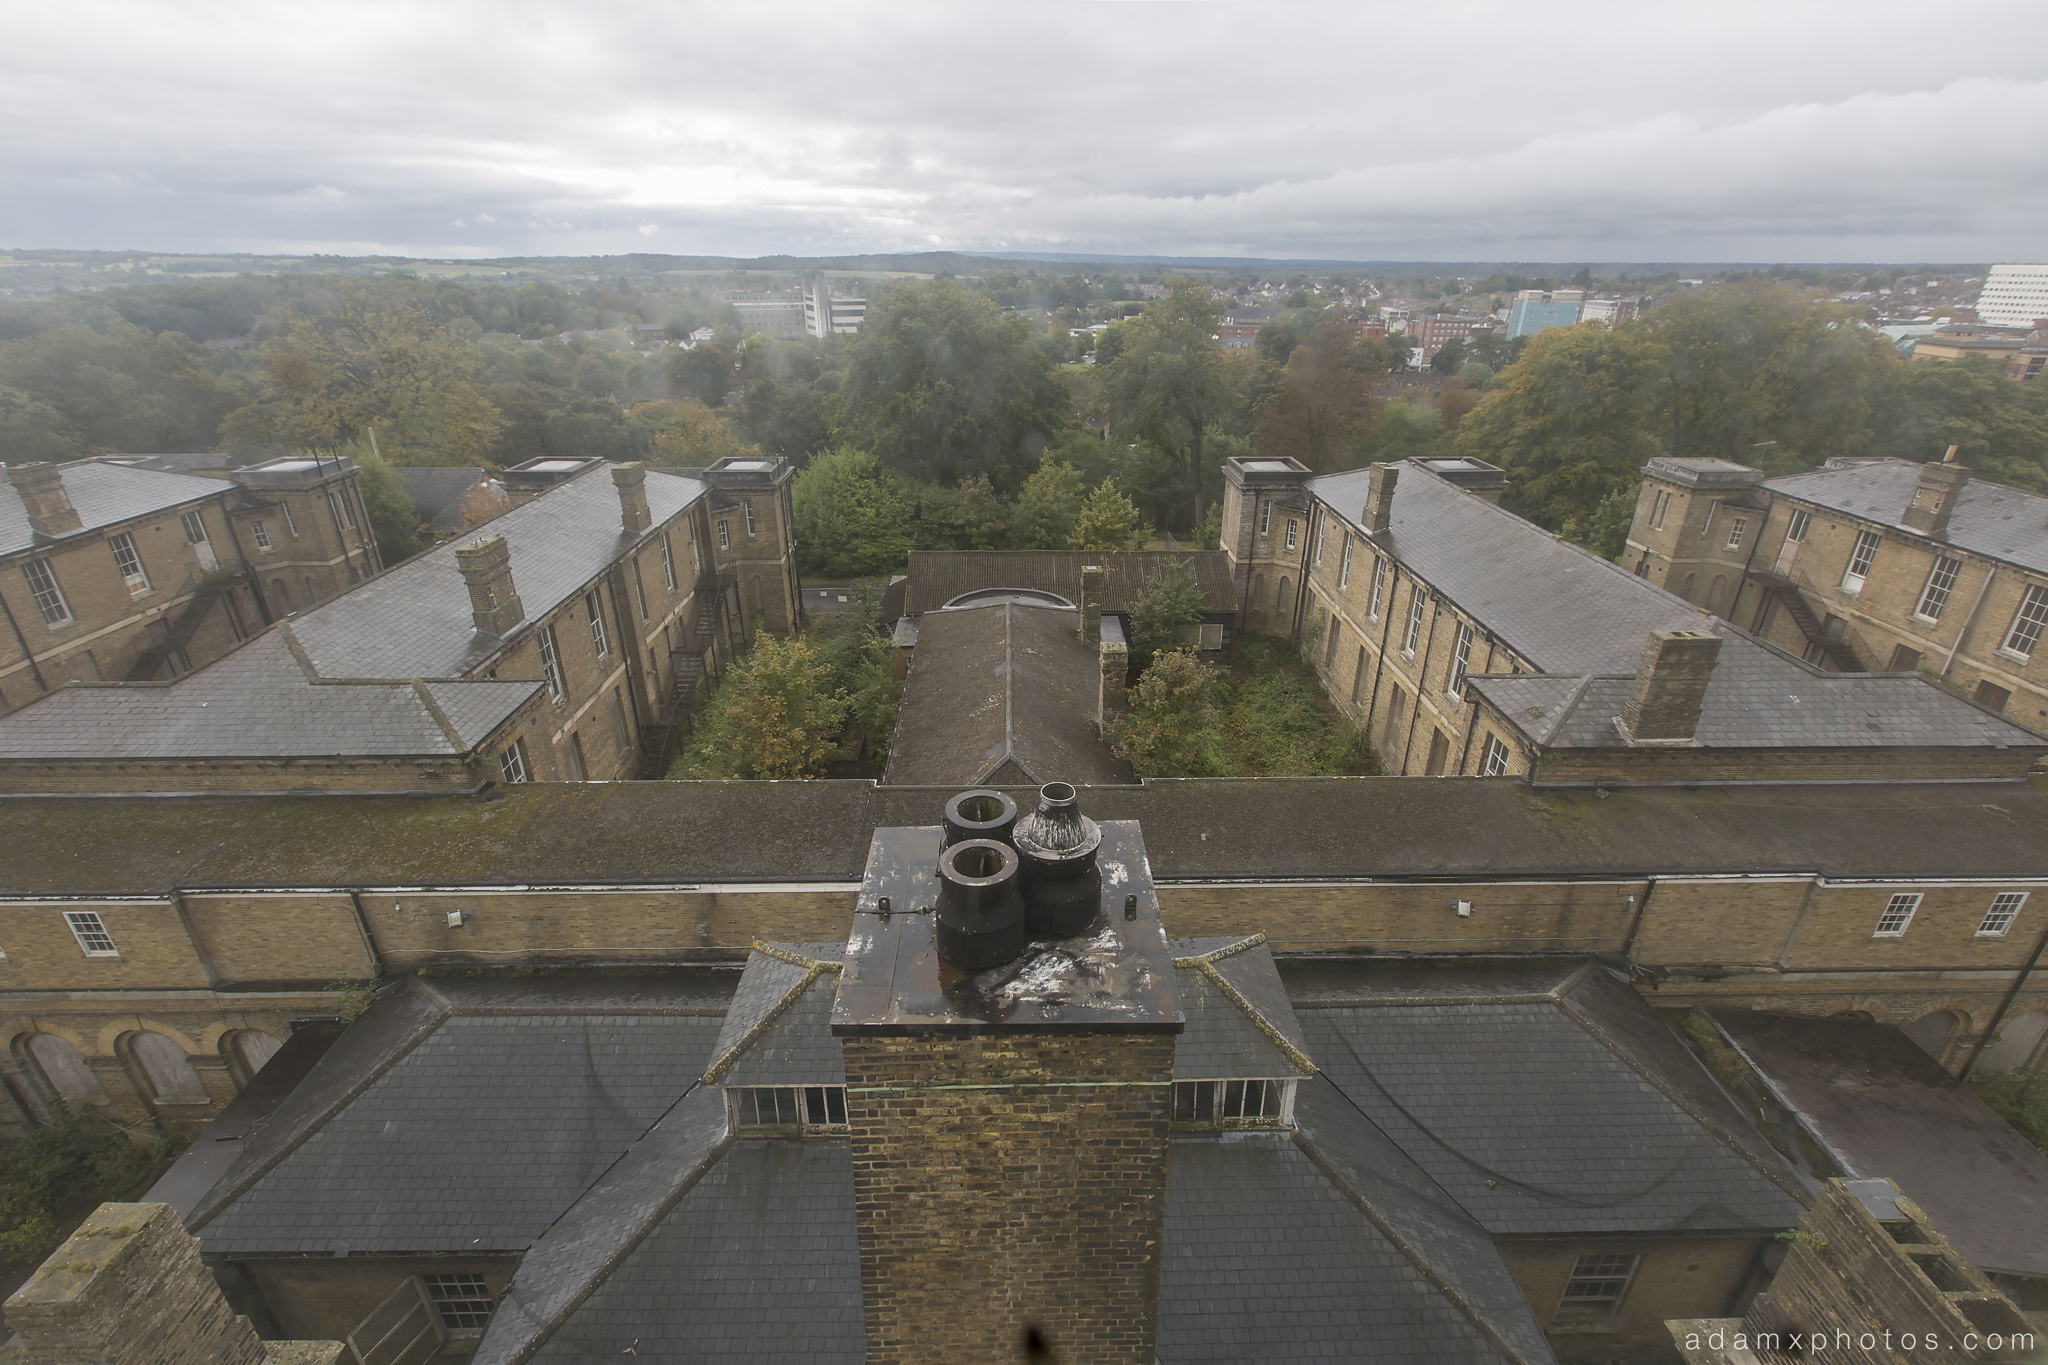 View from the top of the clocktower clock tower panorama X-ray Labs lab laboratory x ray CMH Cambridge Military Hospital Adam X Urbex UE Urban Exploration abandoned derelict unused empty disused decay decayed decaying grimy grime